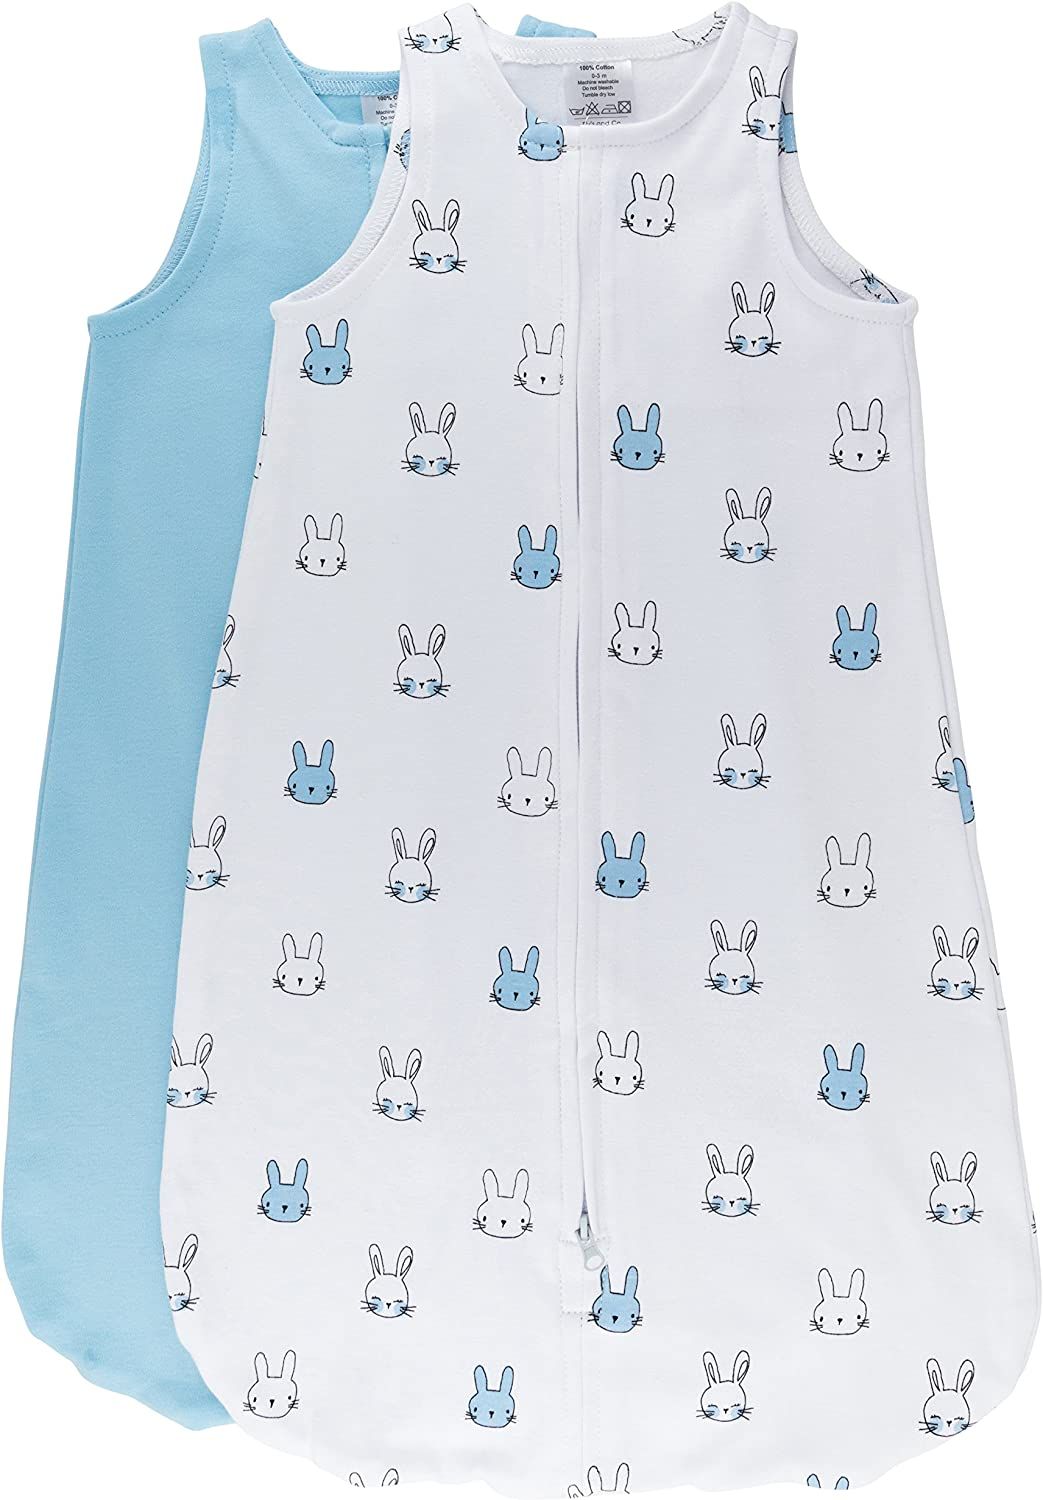 100% Cotton Wearable Blanket Baby Sleep Bag Blue Bunnies 2 Pack (6-12 Months)